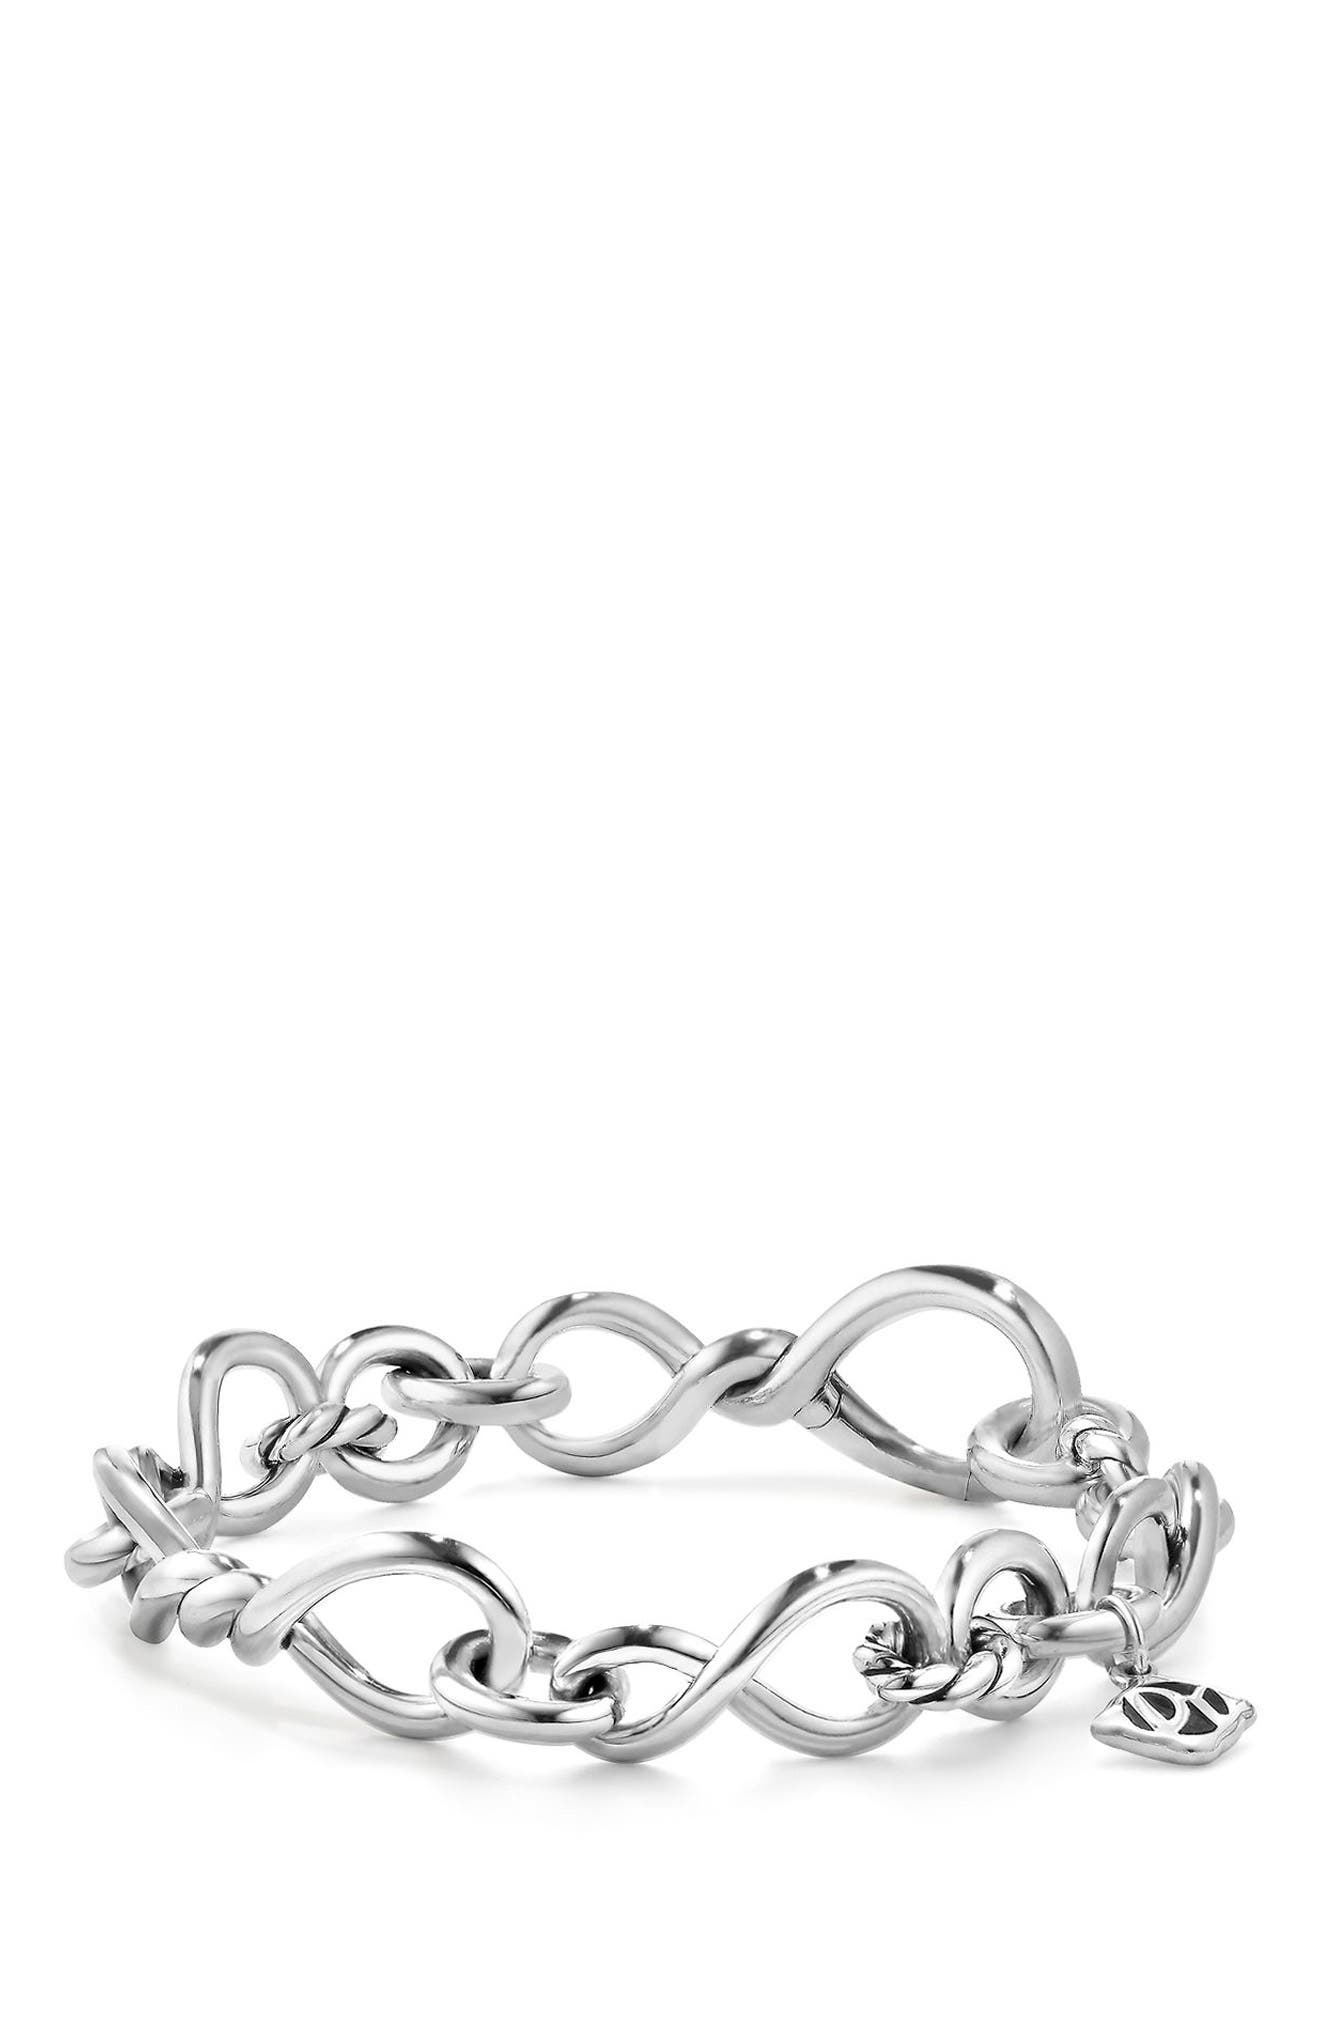 Continuance Medium Chain Bracelet,                             Main thumbnail 1, color,                             SILVER